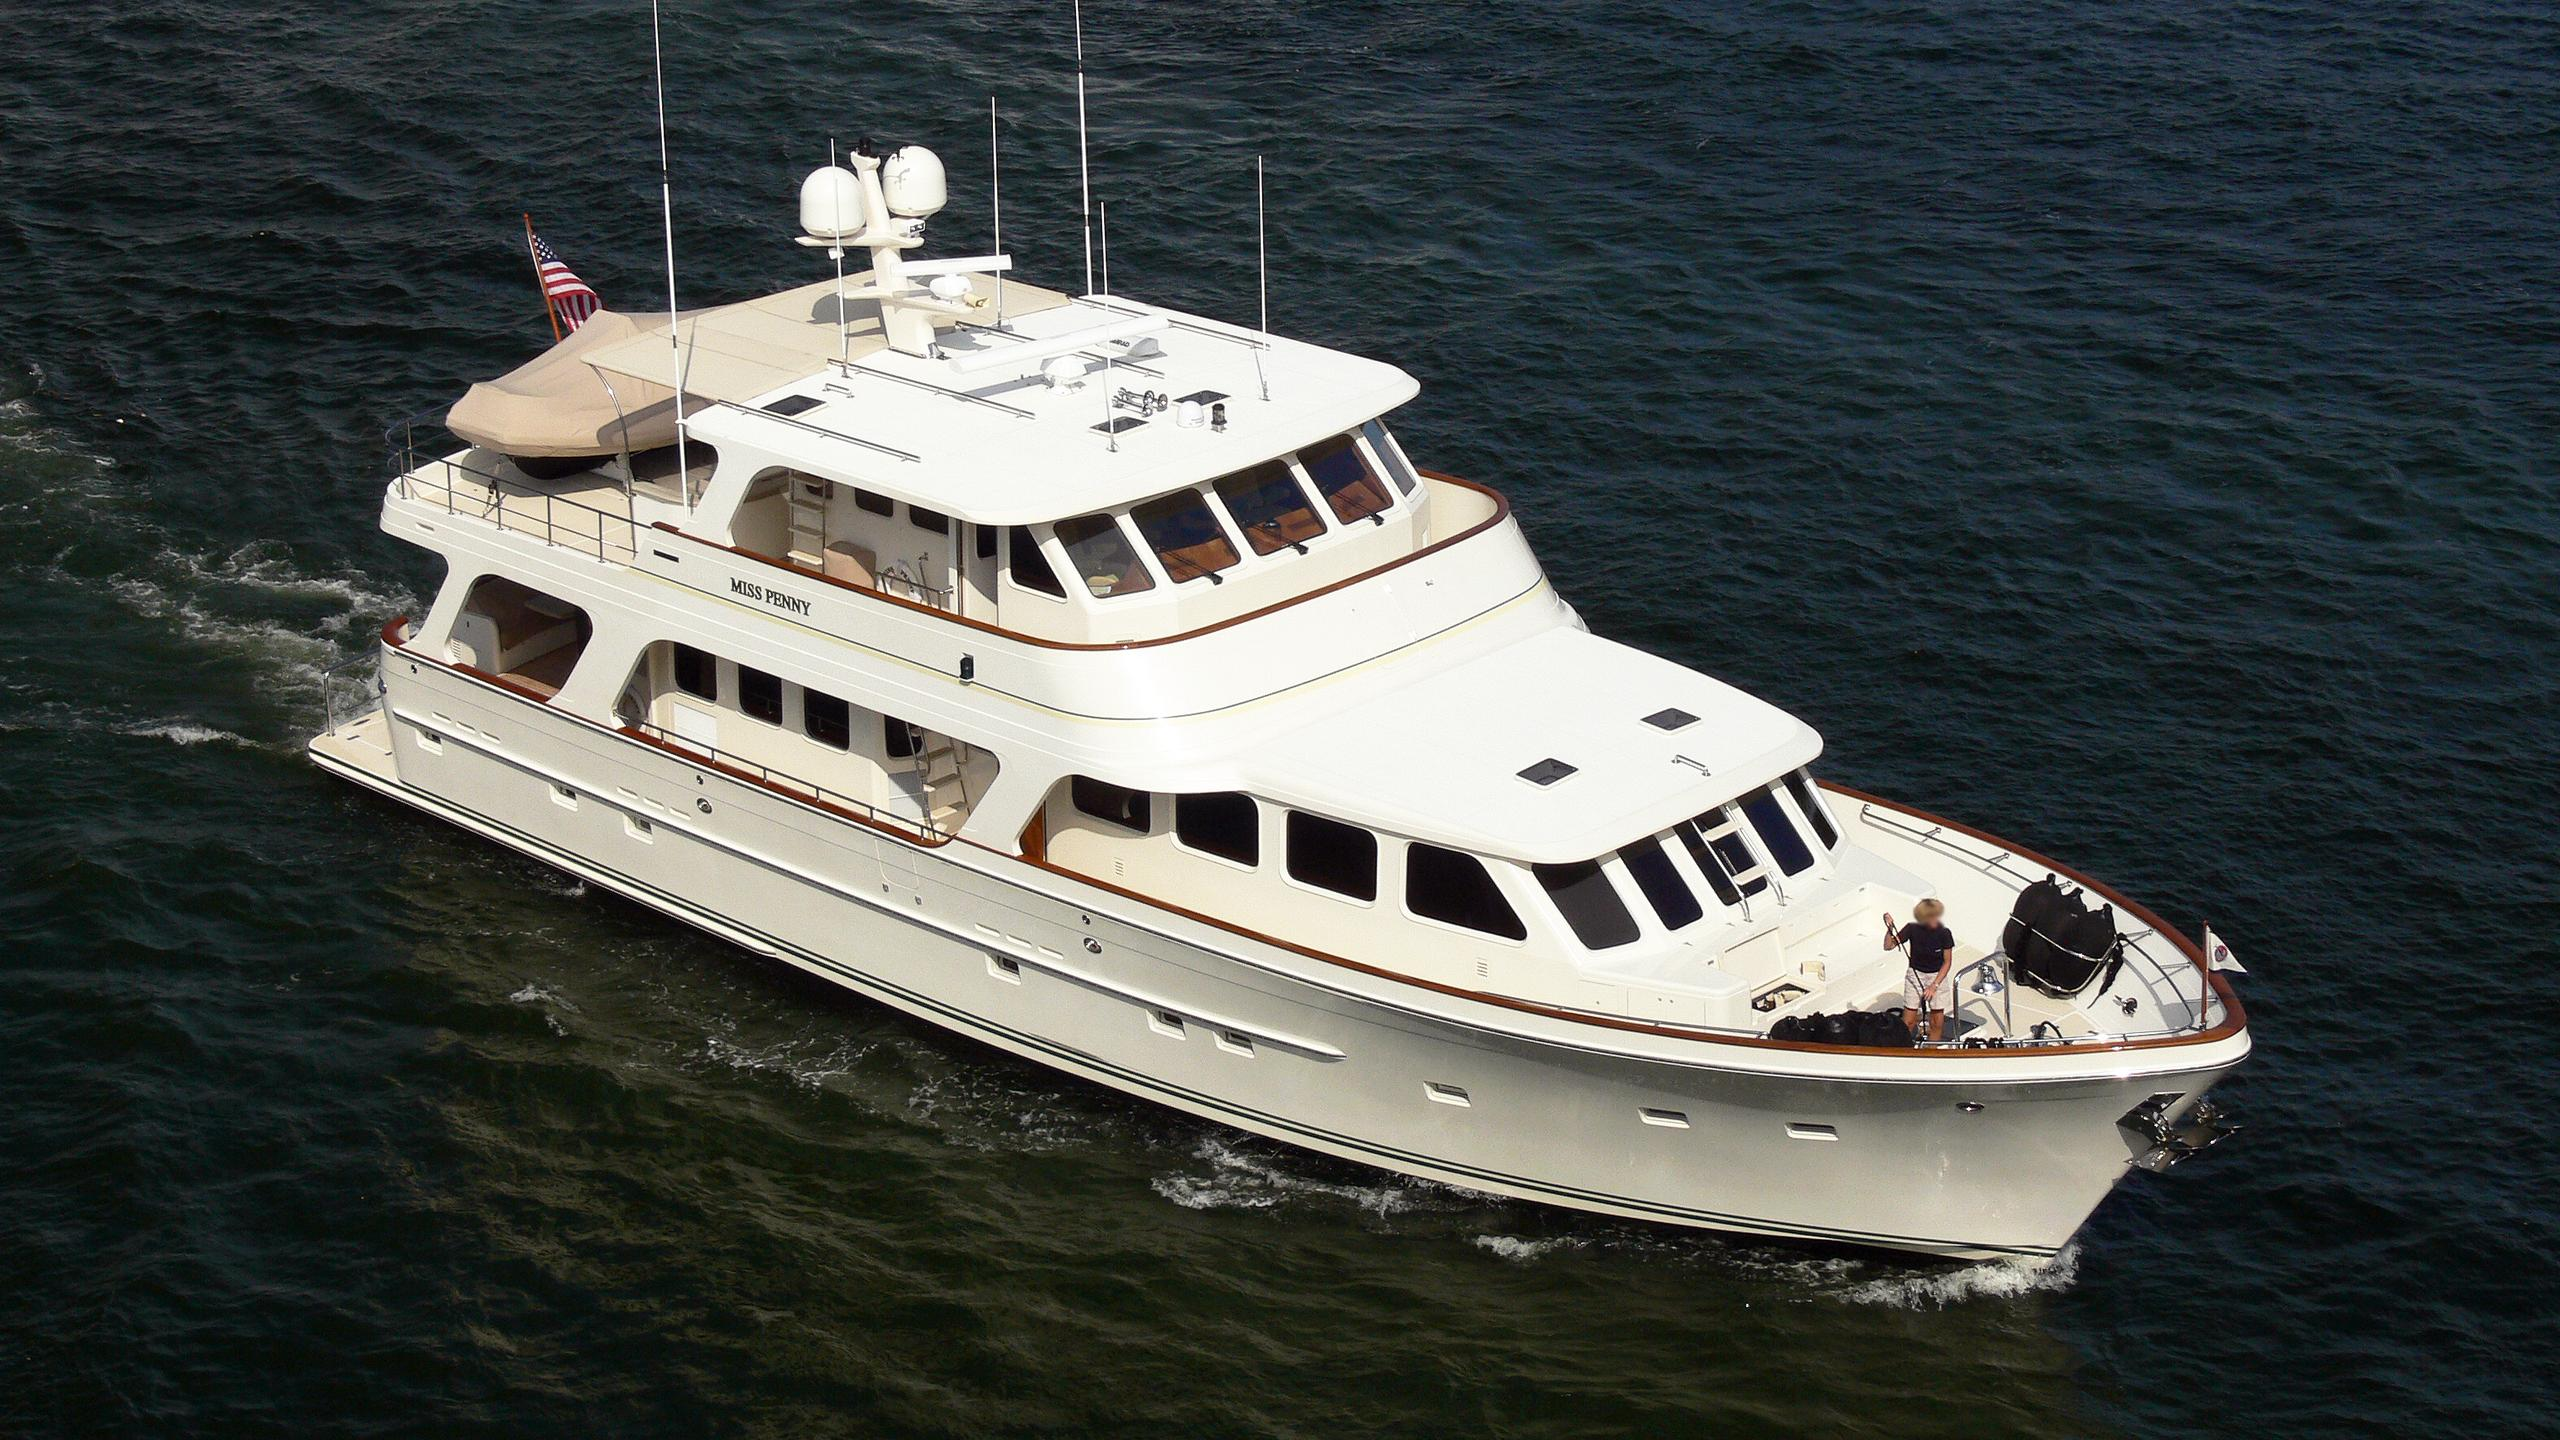 miss-penny-motor-yacht-offshore-voyager-80-2003-25m-aerial